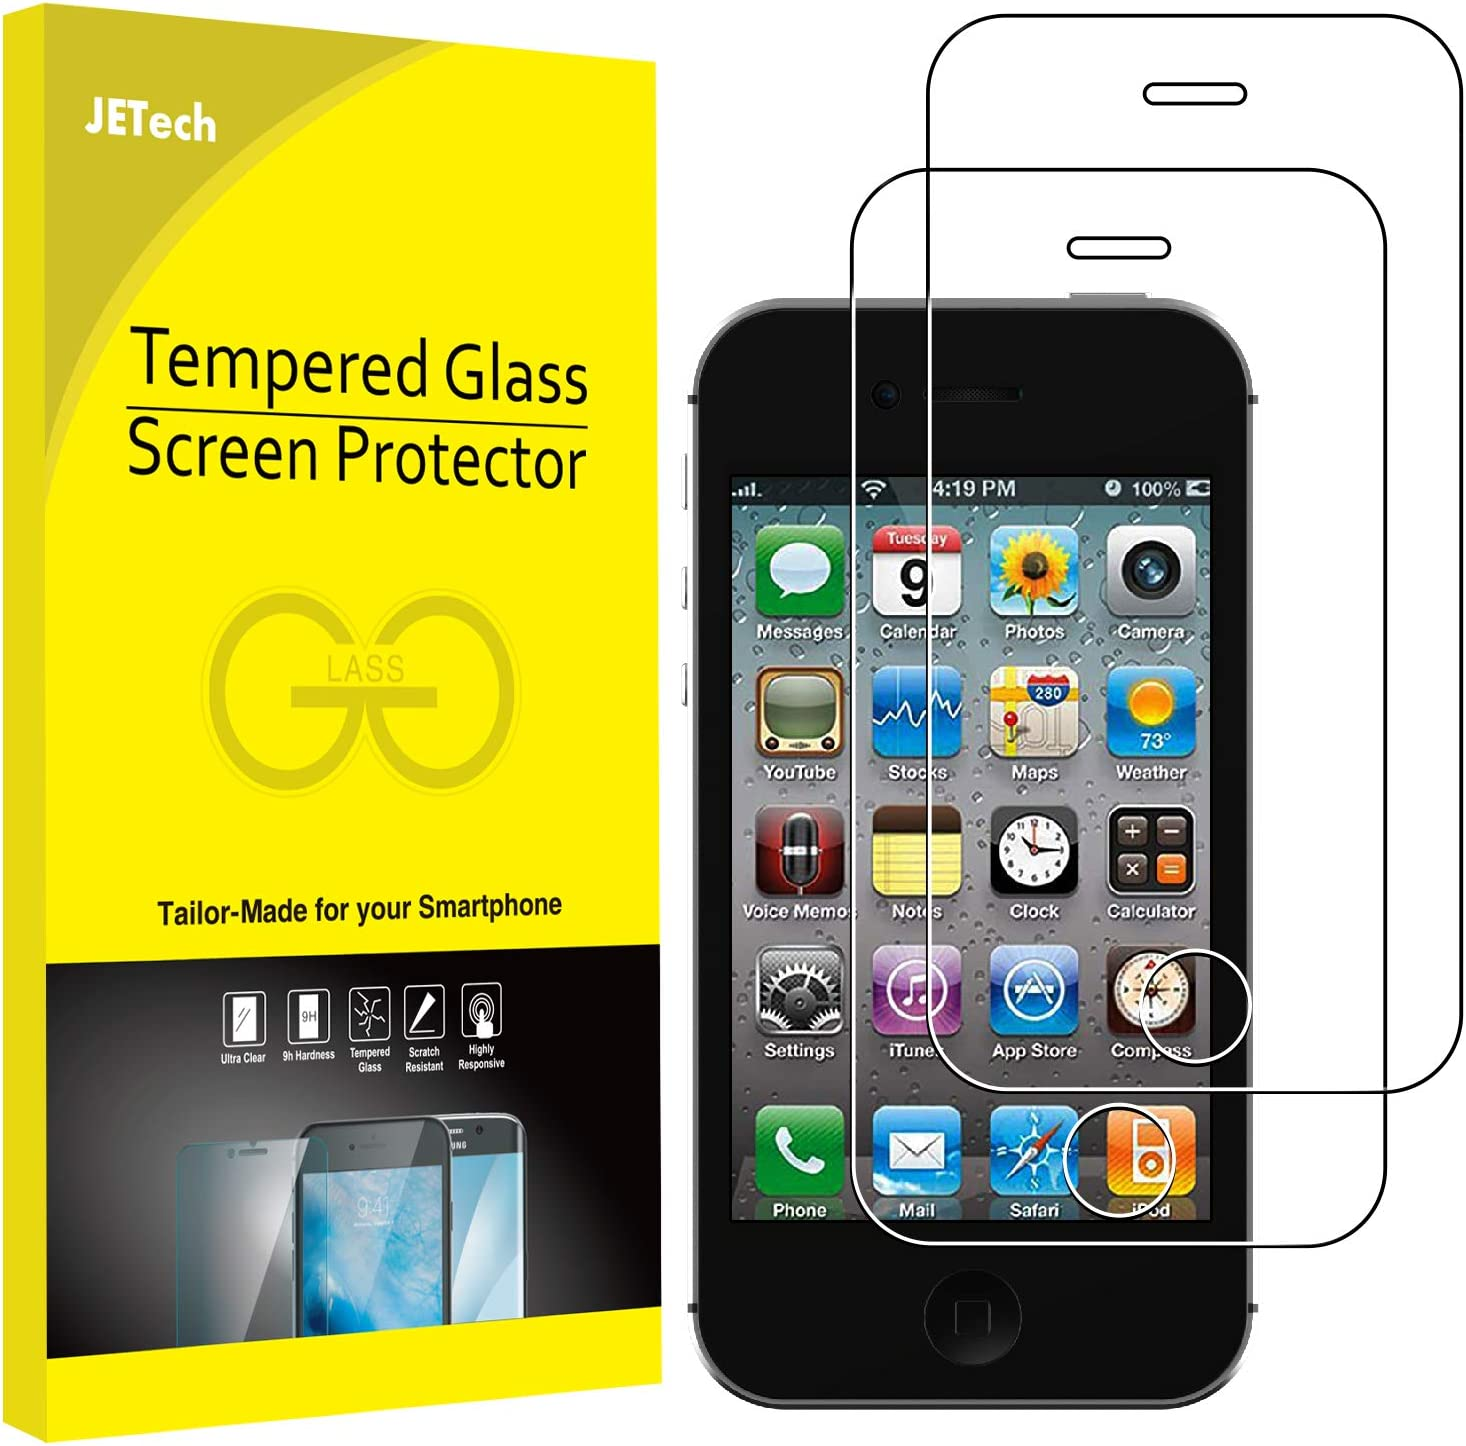 JETech 2-Pack Screen Protector for iPhone 4 and iPhone 4s, Tempered Glass Film